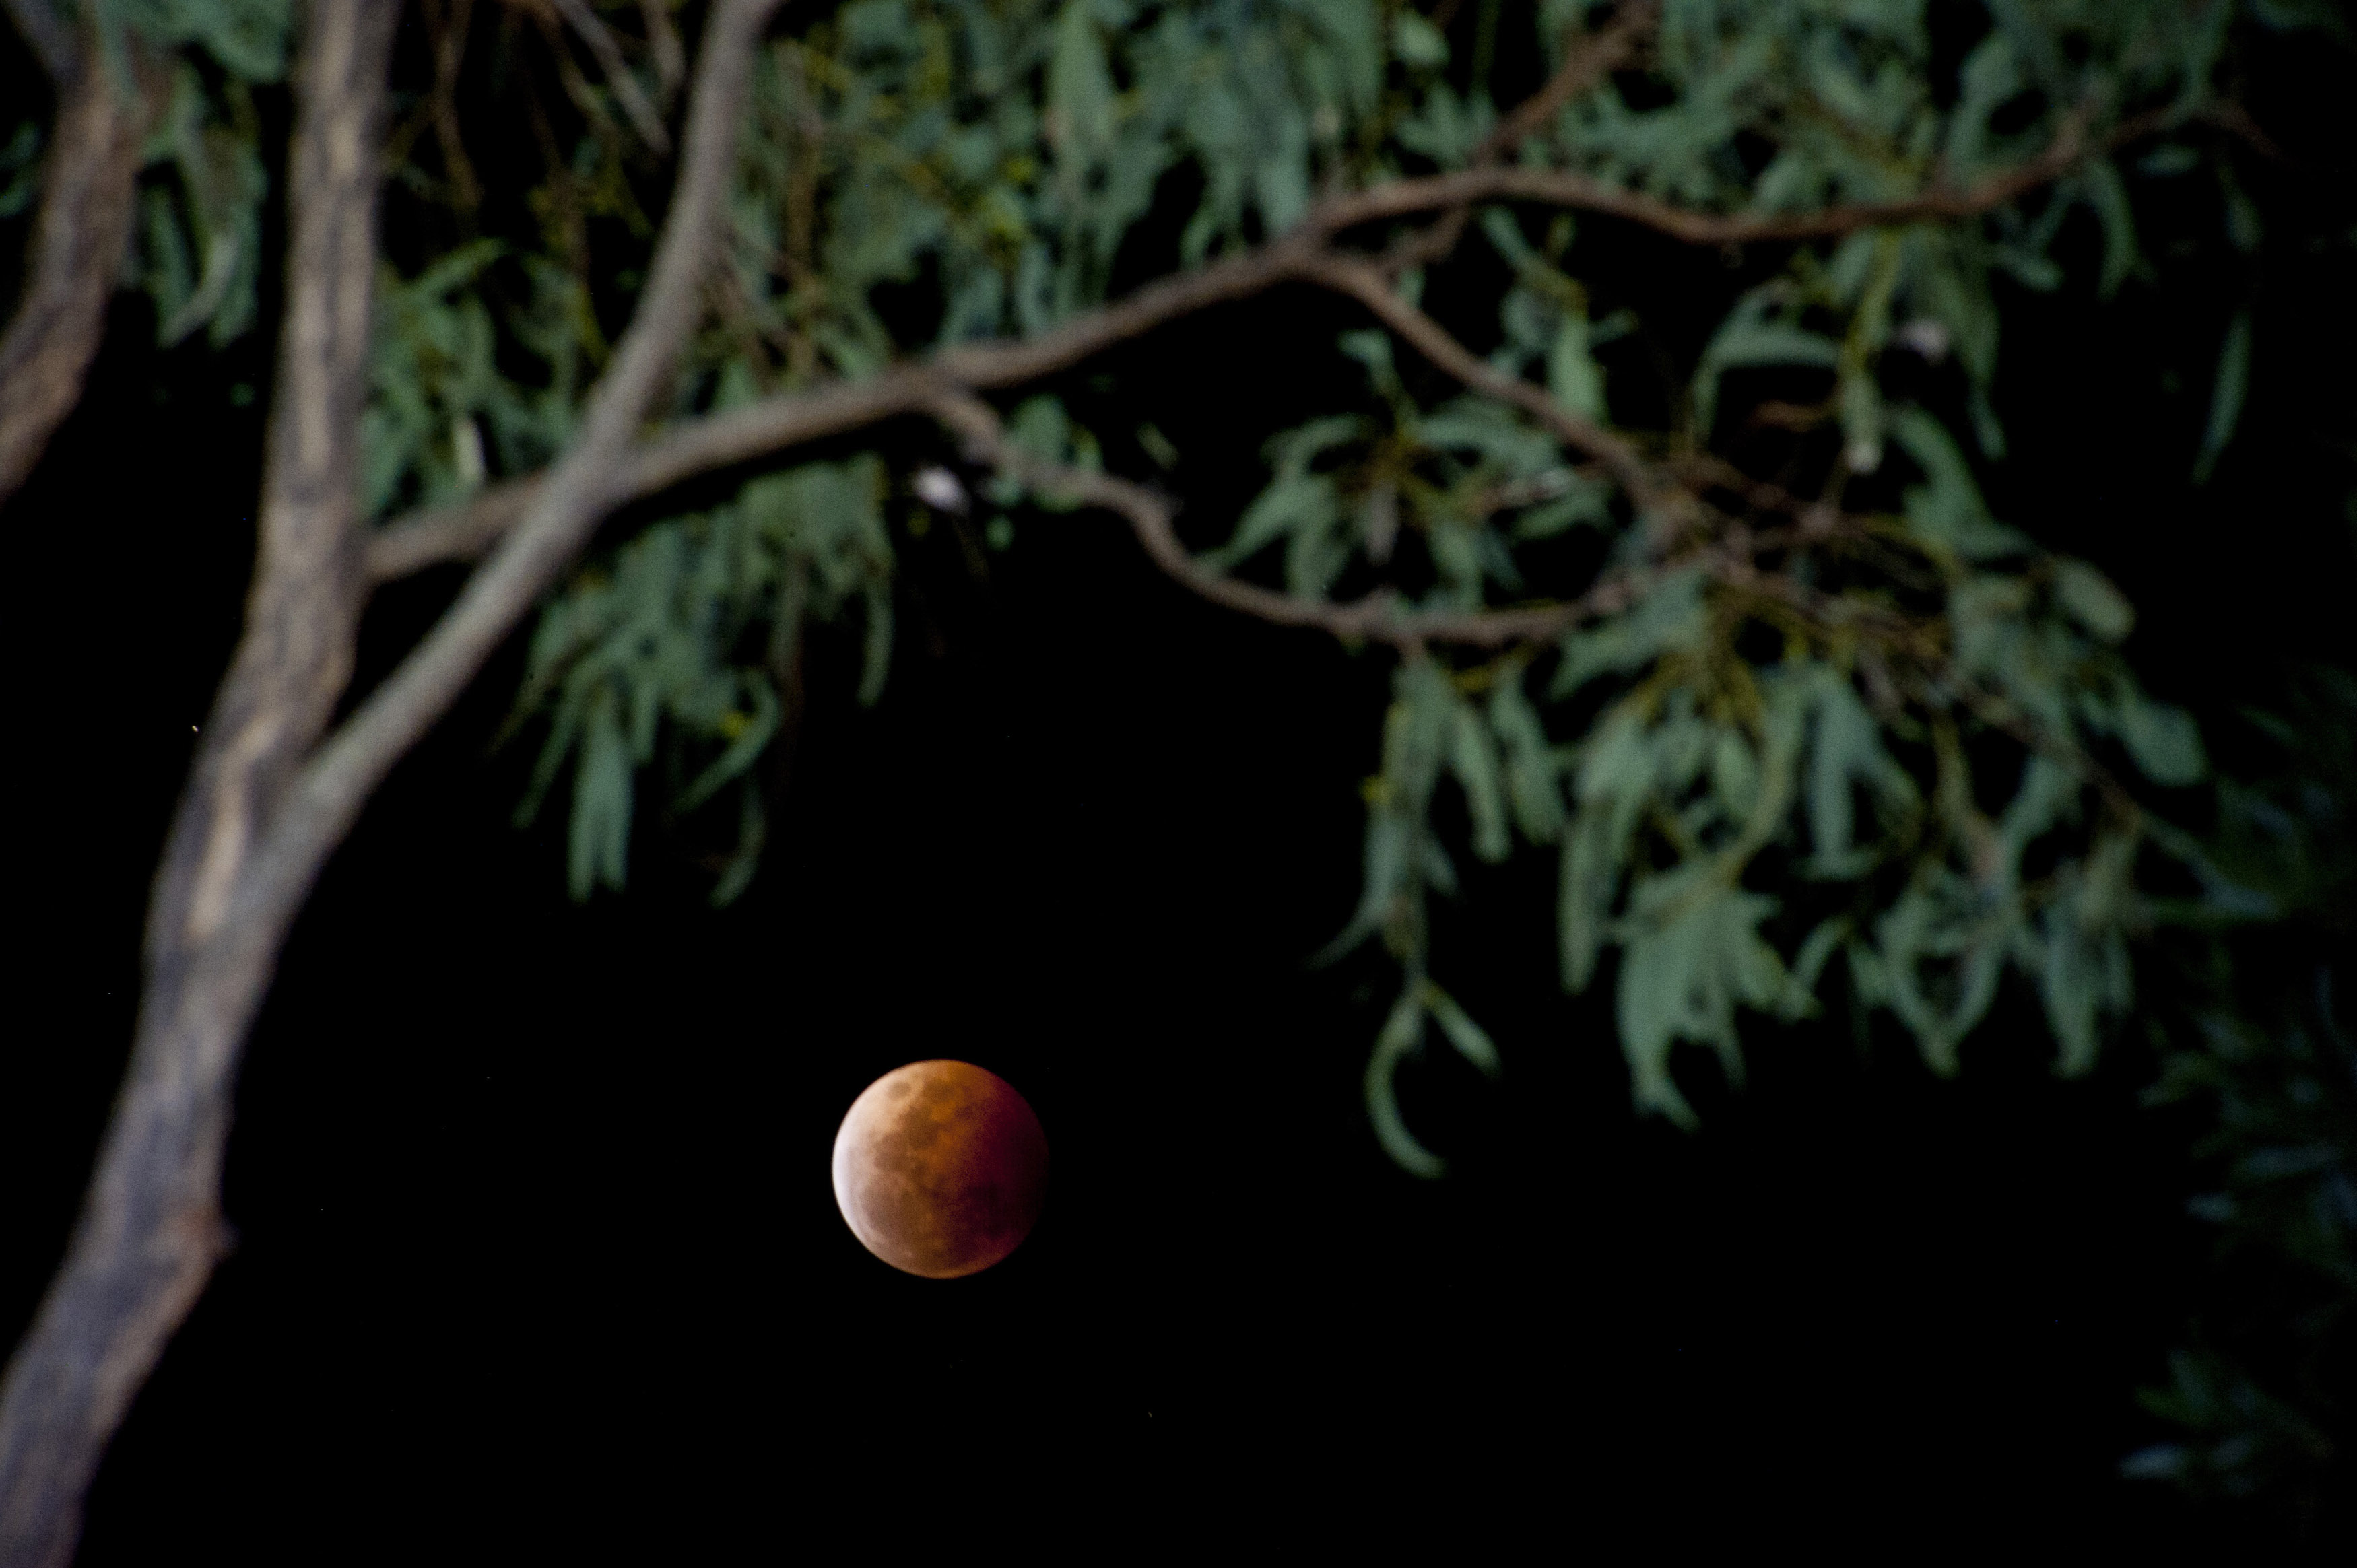 Almost eclipsed copper colored moon in a dark sky caused by the earths shadow viewed below a tree branch